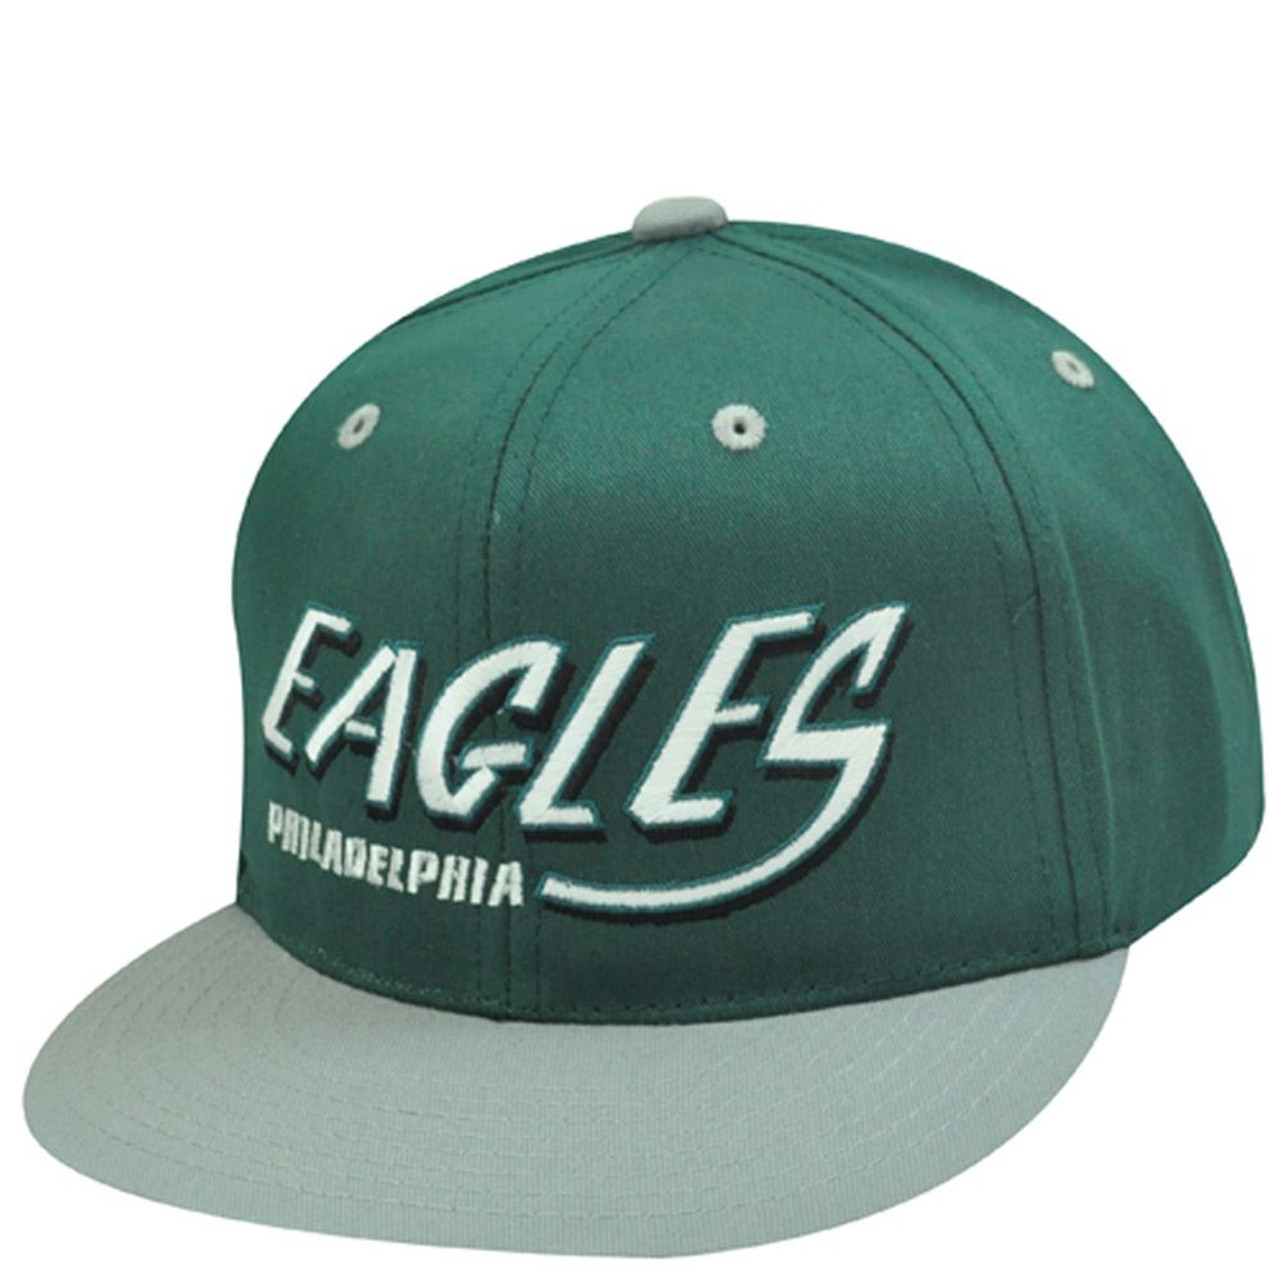 new arrival 7d412 41414 NFL PHILADELPHIA EAGLES OLD SCHOOL SNAPBACK CAP HAT